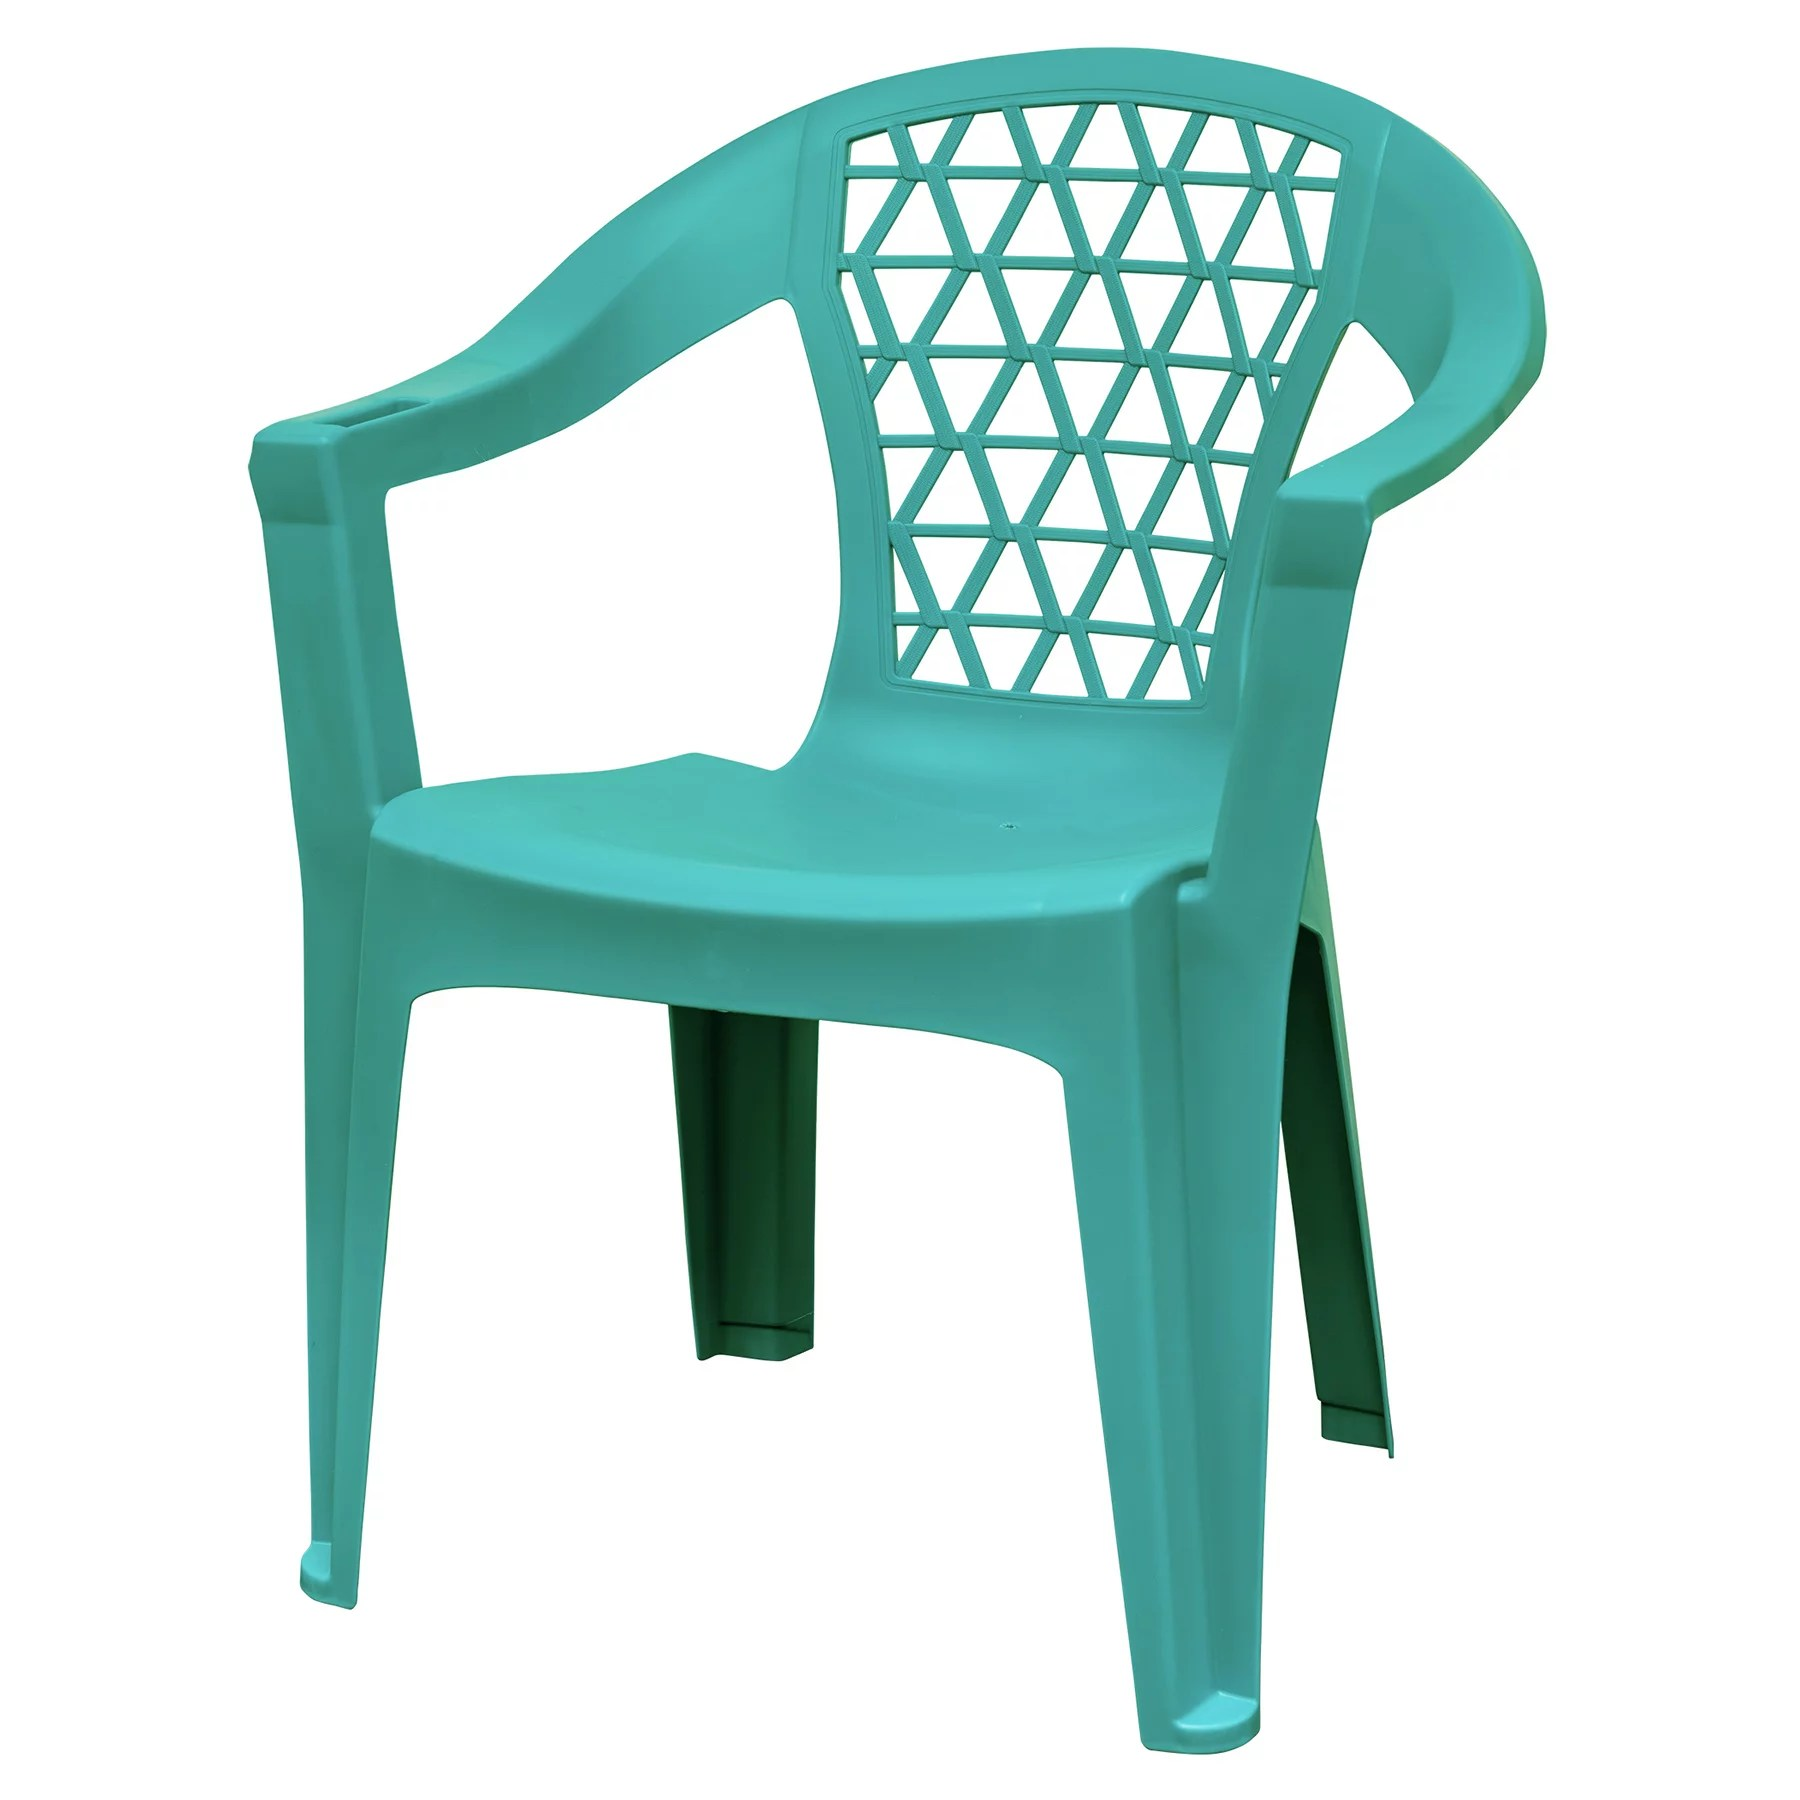 adams penza outdoor resin stack chair with phone holder plastic patio furniture teal walmart com